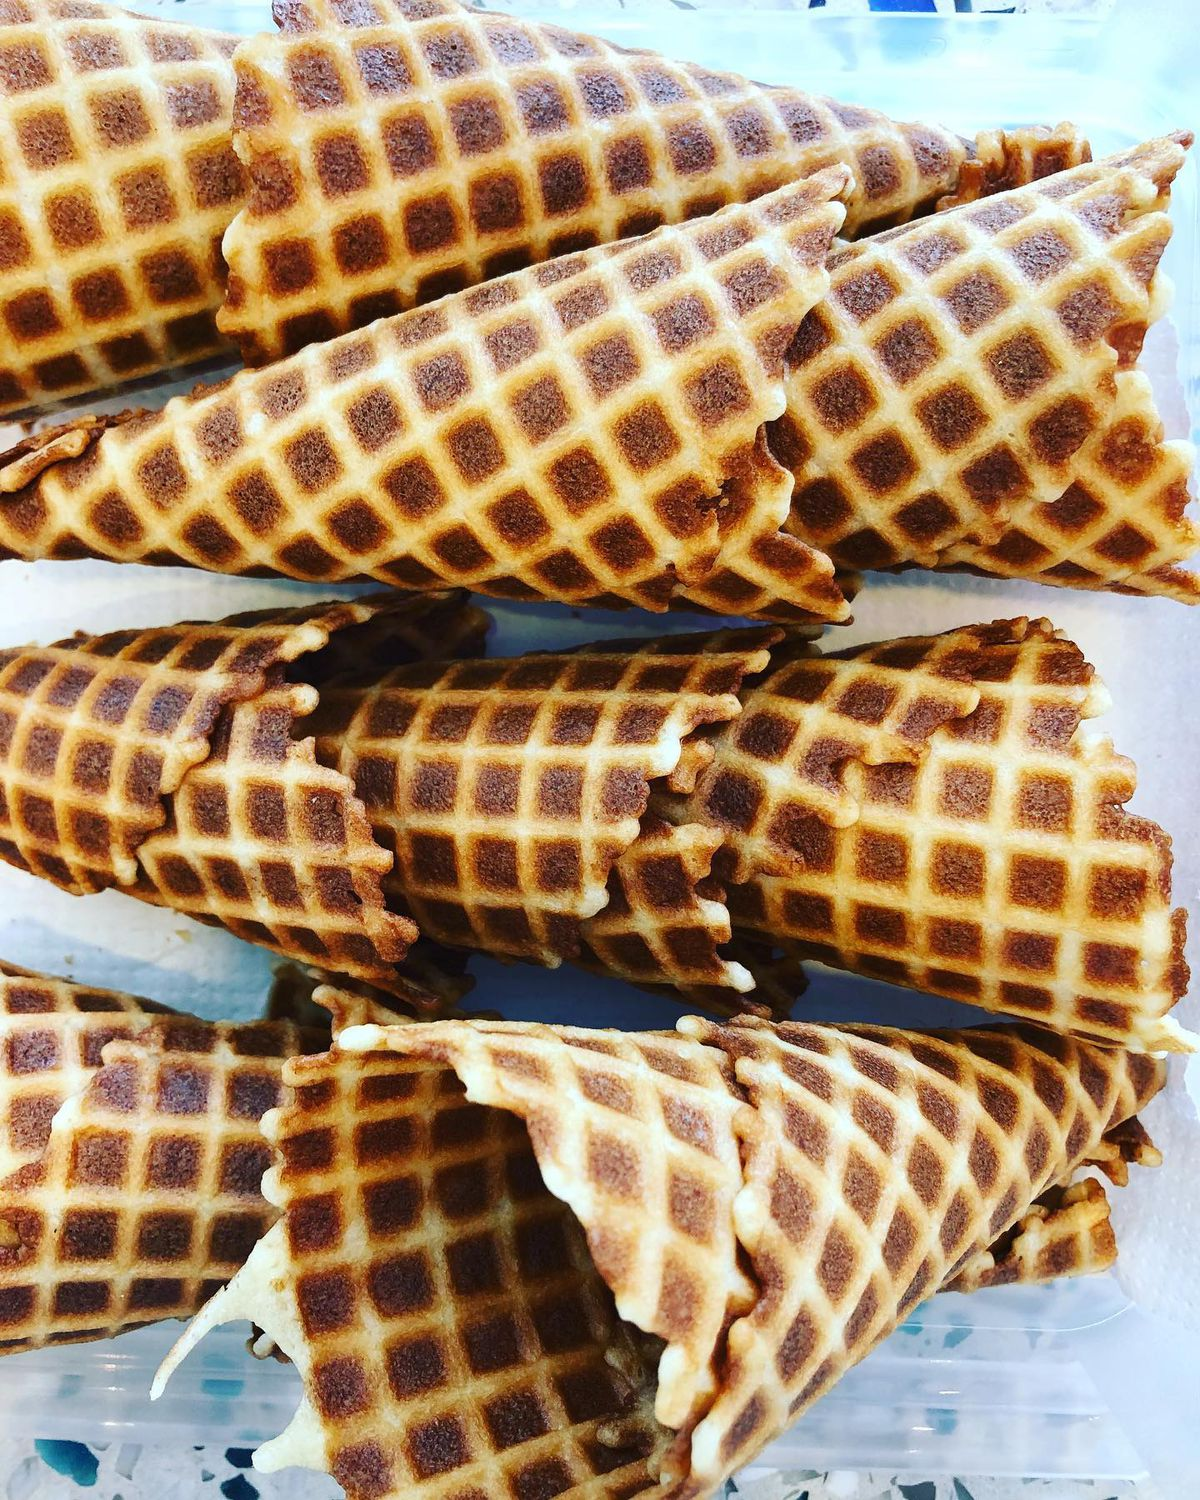 Waffle cones made by Little Tart Bakeshop